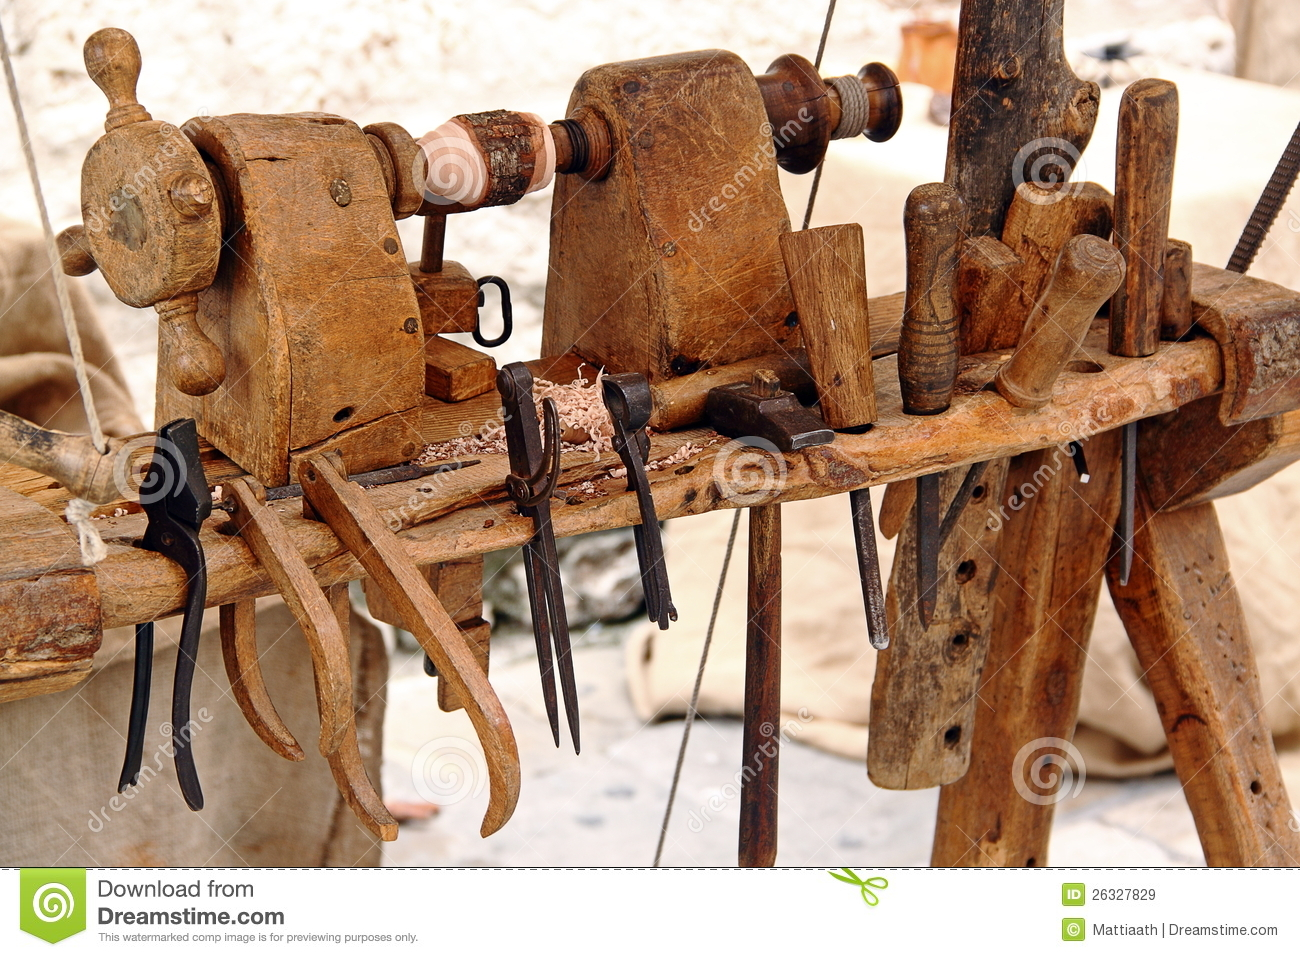 Lathe And Tools For Woodworking Royalty Free Stock Images - Image ...